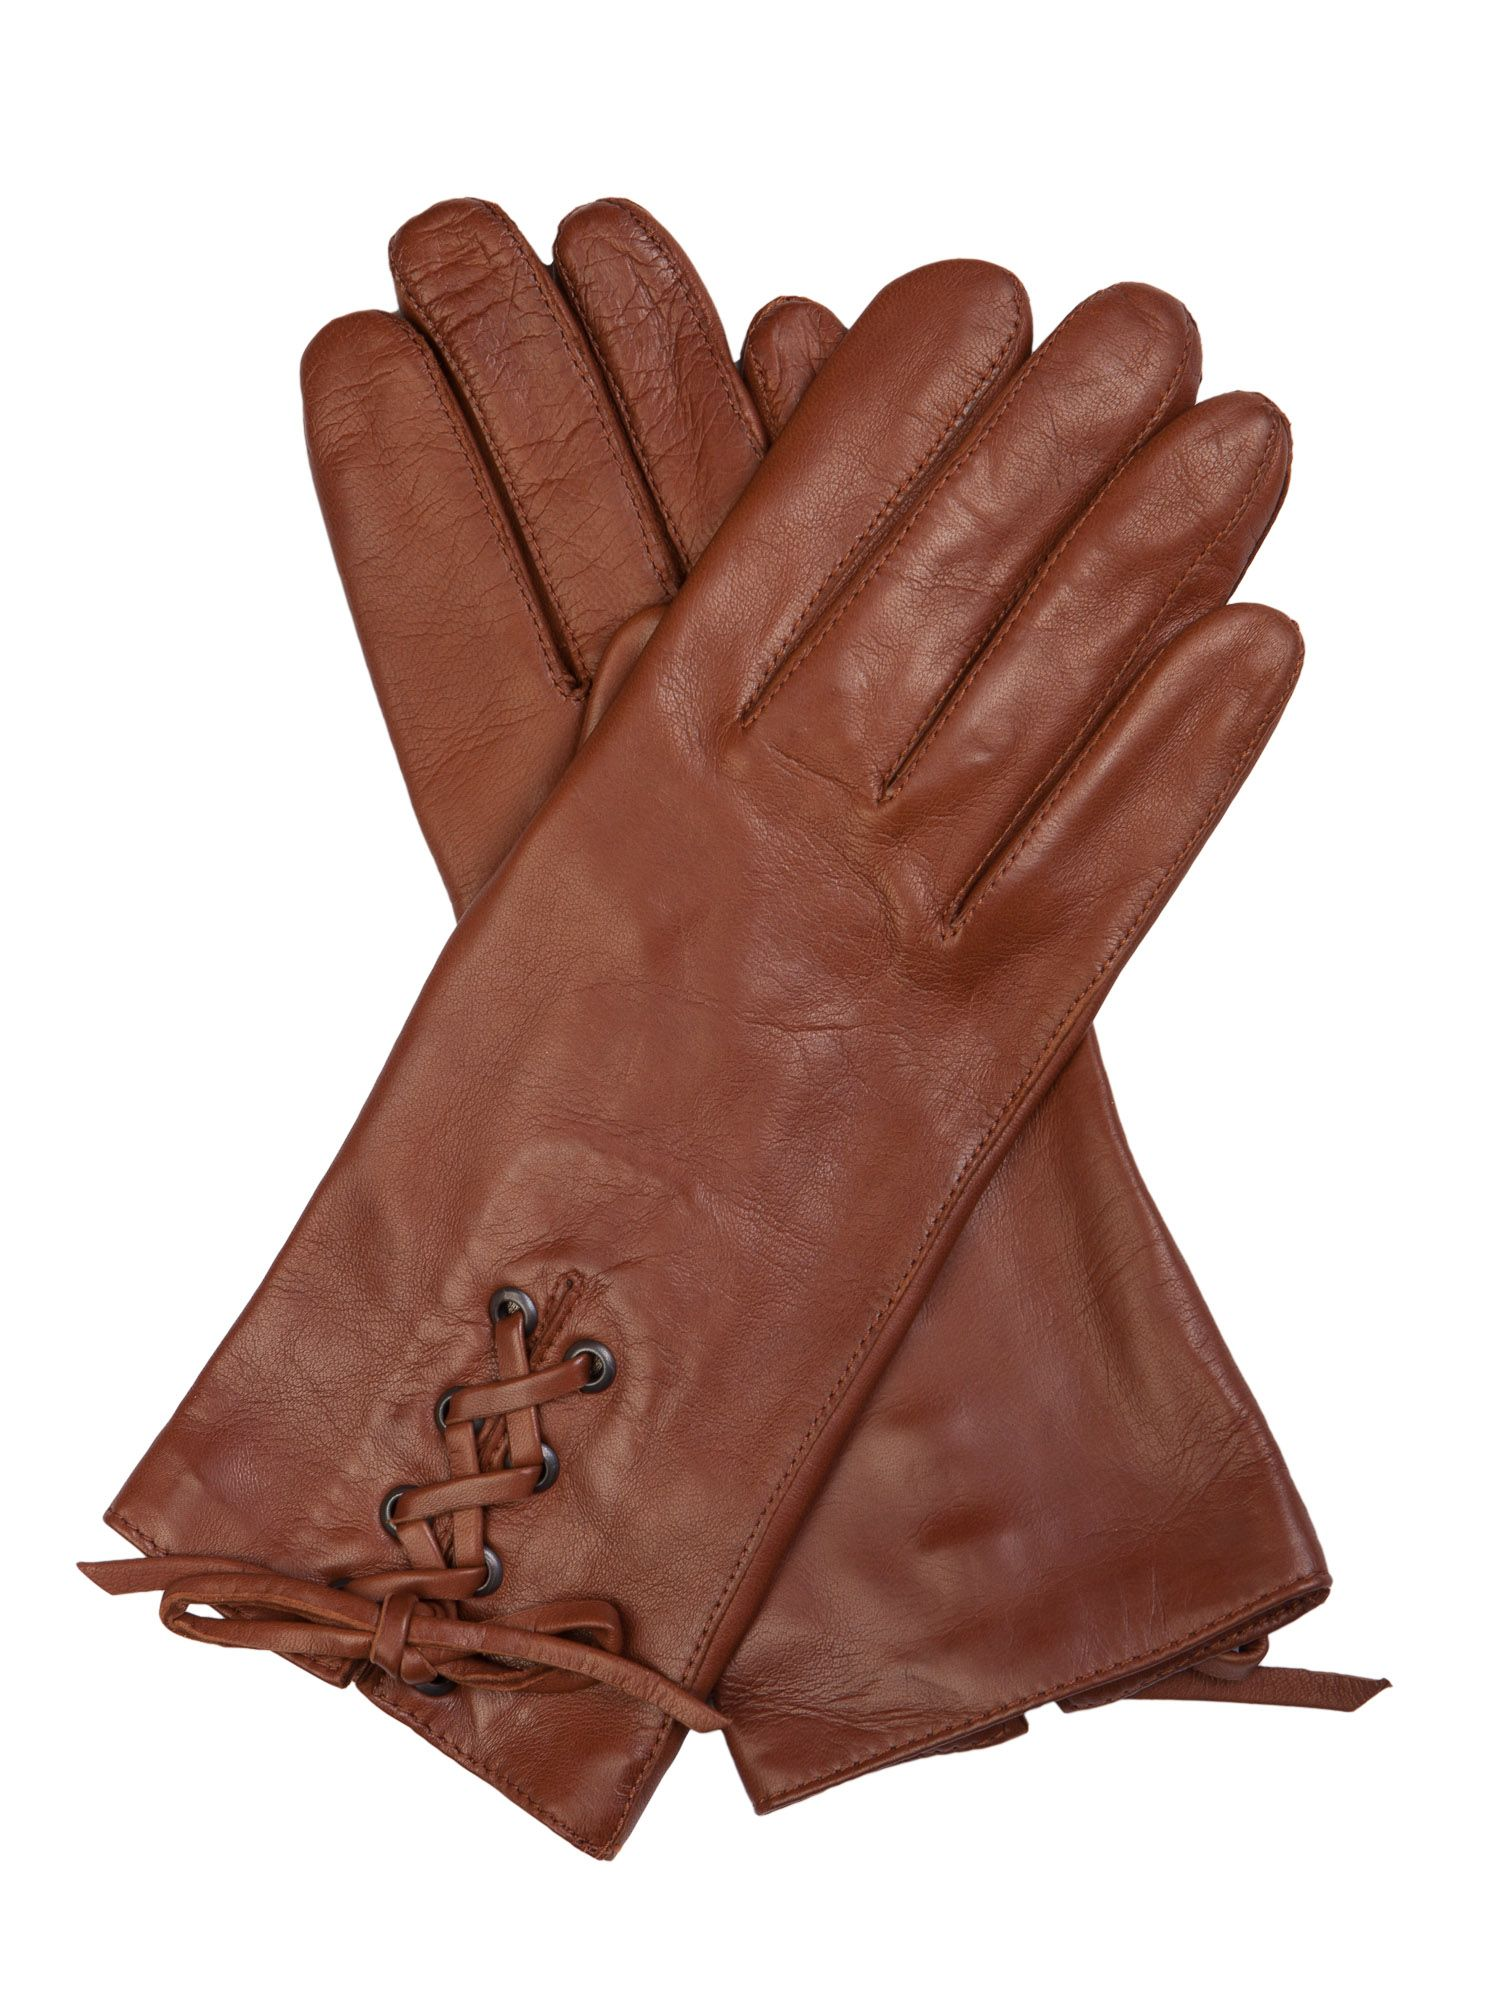 Vintage Style Gloves- Long, Wrist, Evening, Day, Leather, Lace Cornelia James Paloma Leather Gloves £69.00 AT vintagedancer.com